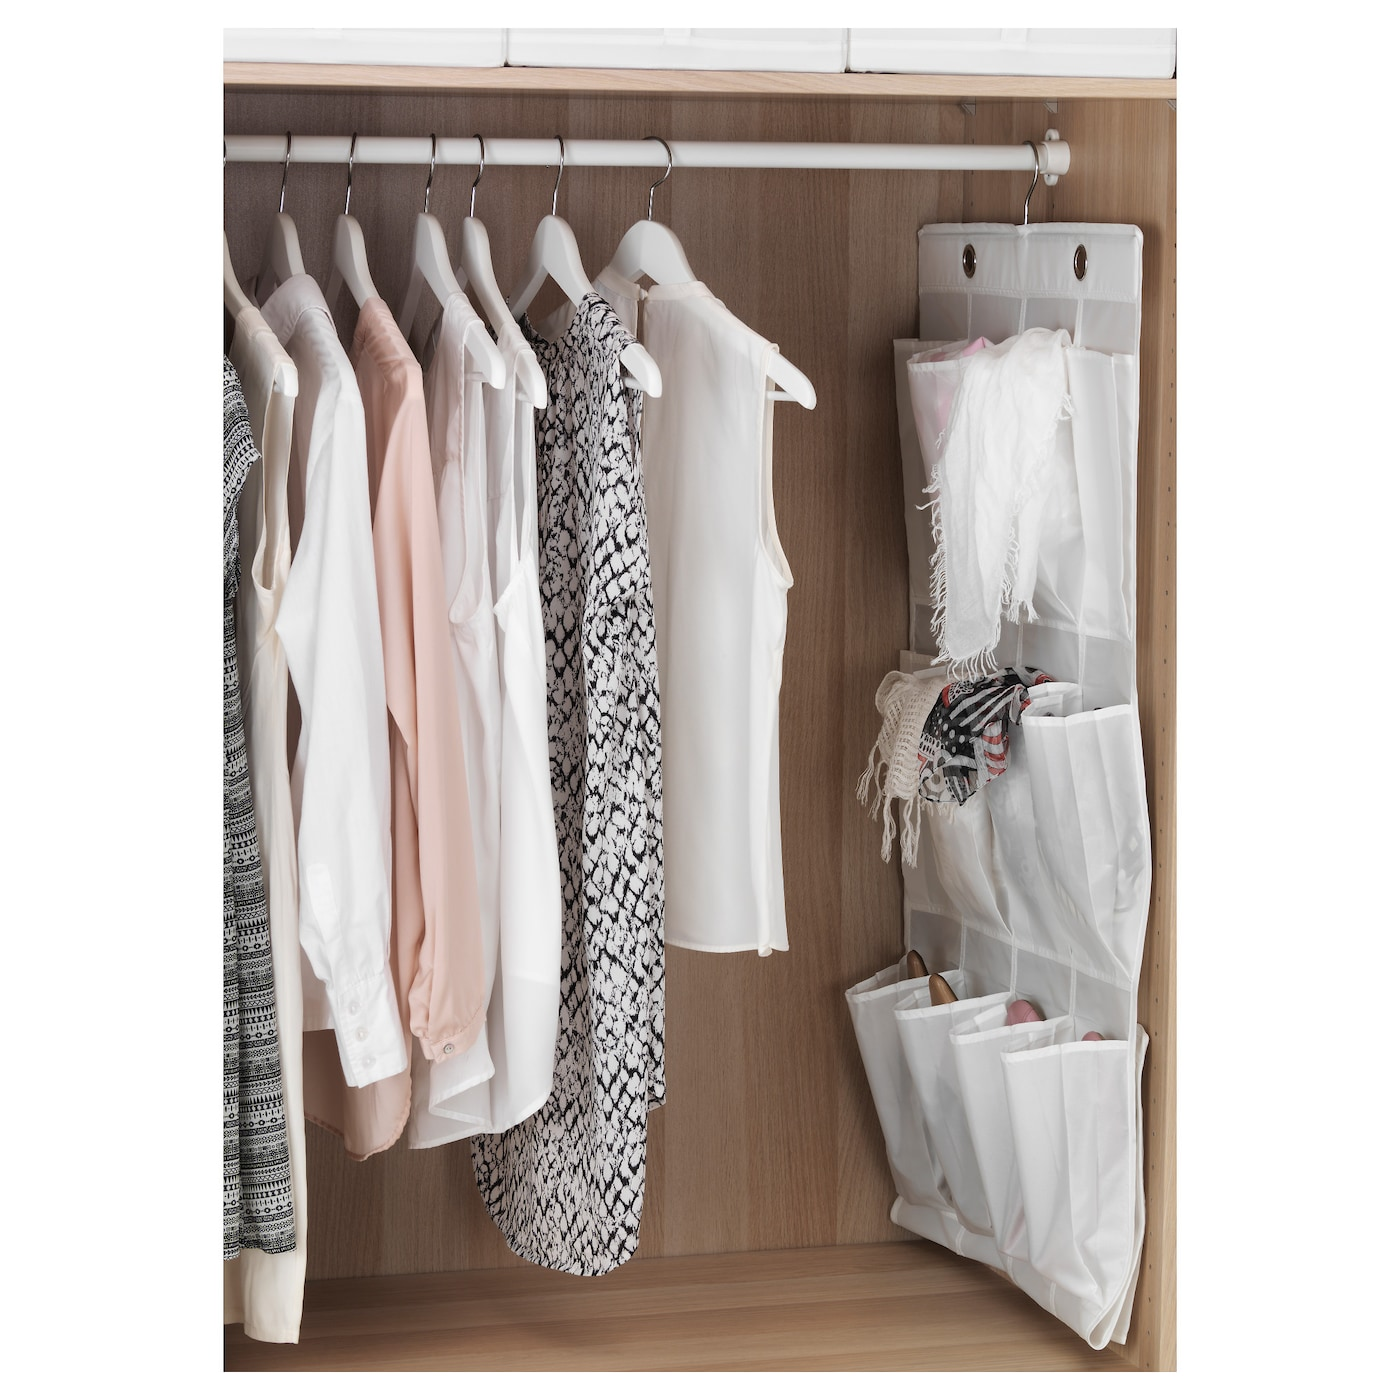 household functional clothing slip rack wardrobe hanger space cloth from multi product storage anti foldable laundry clip saving